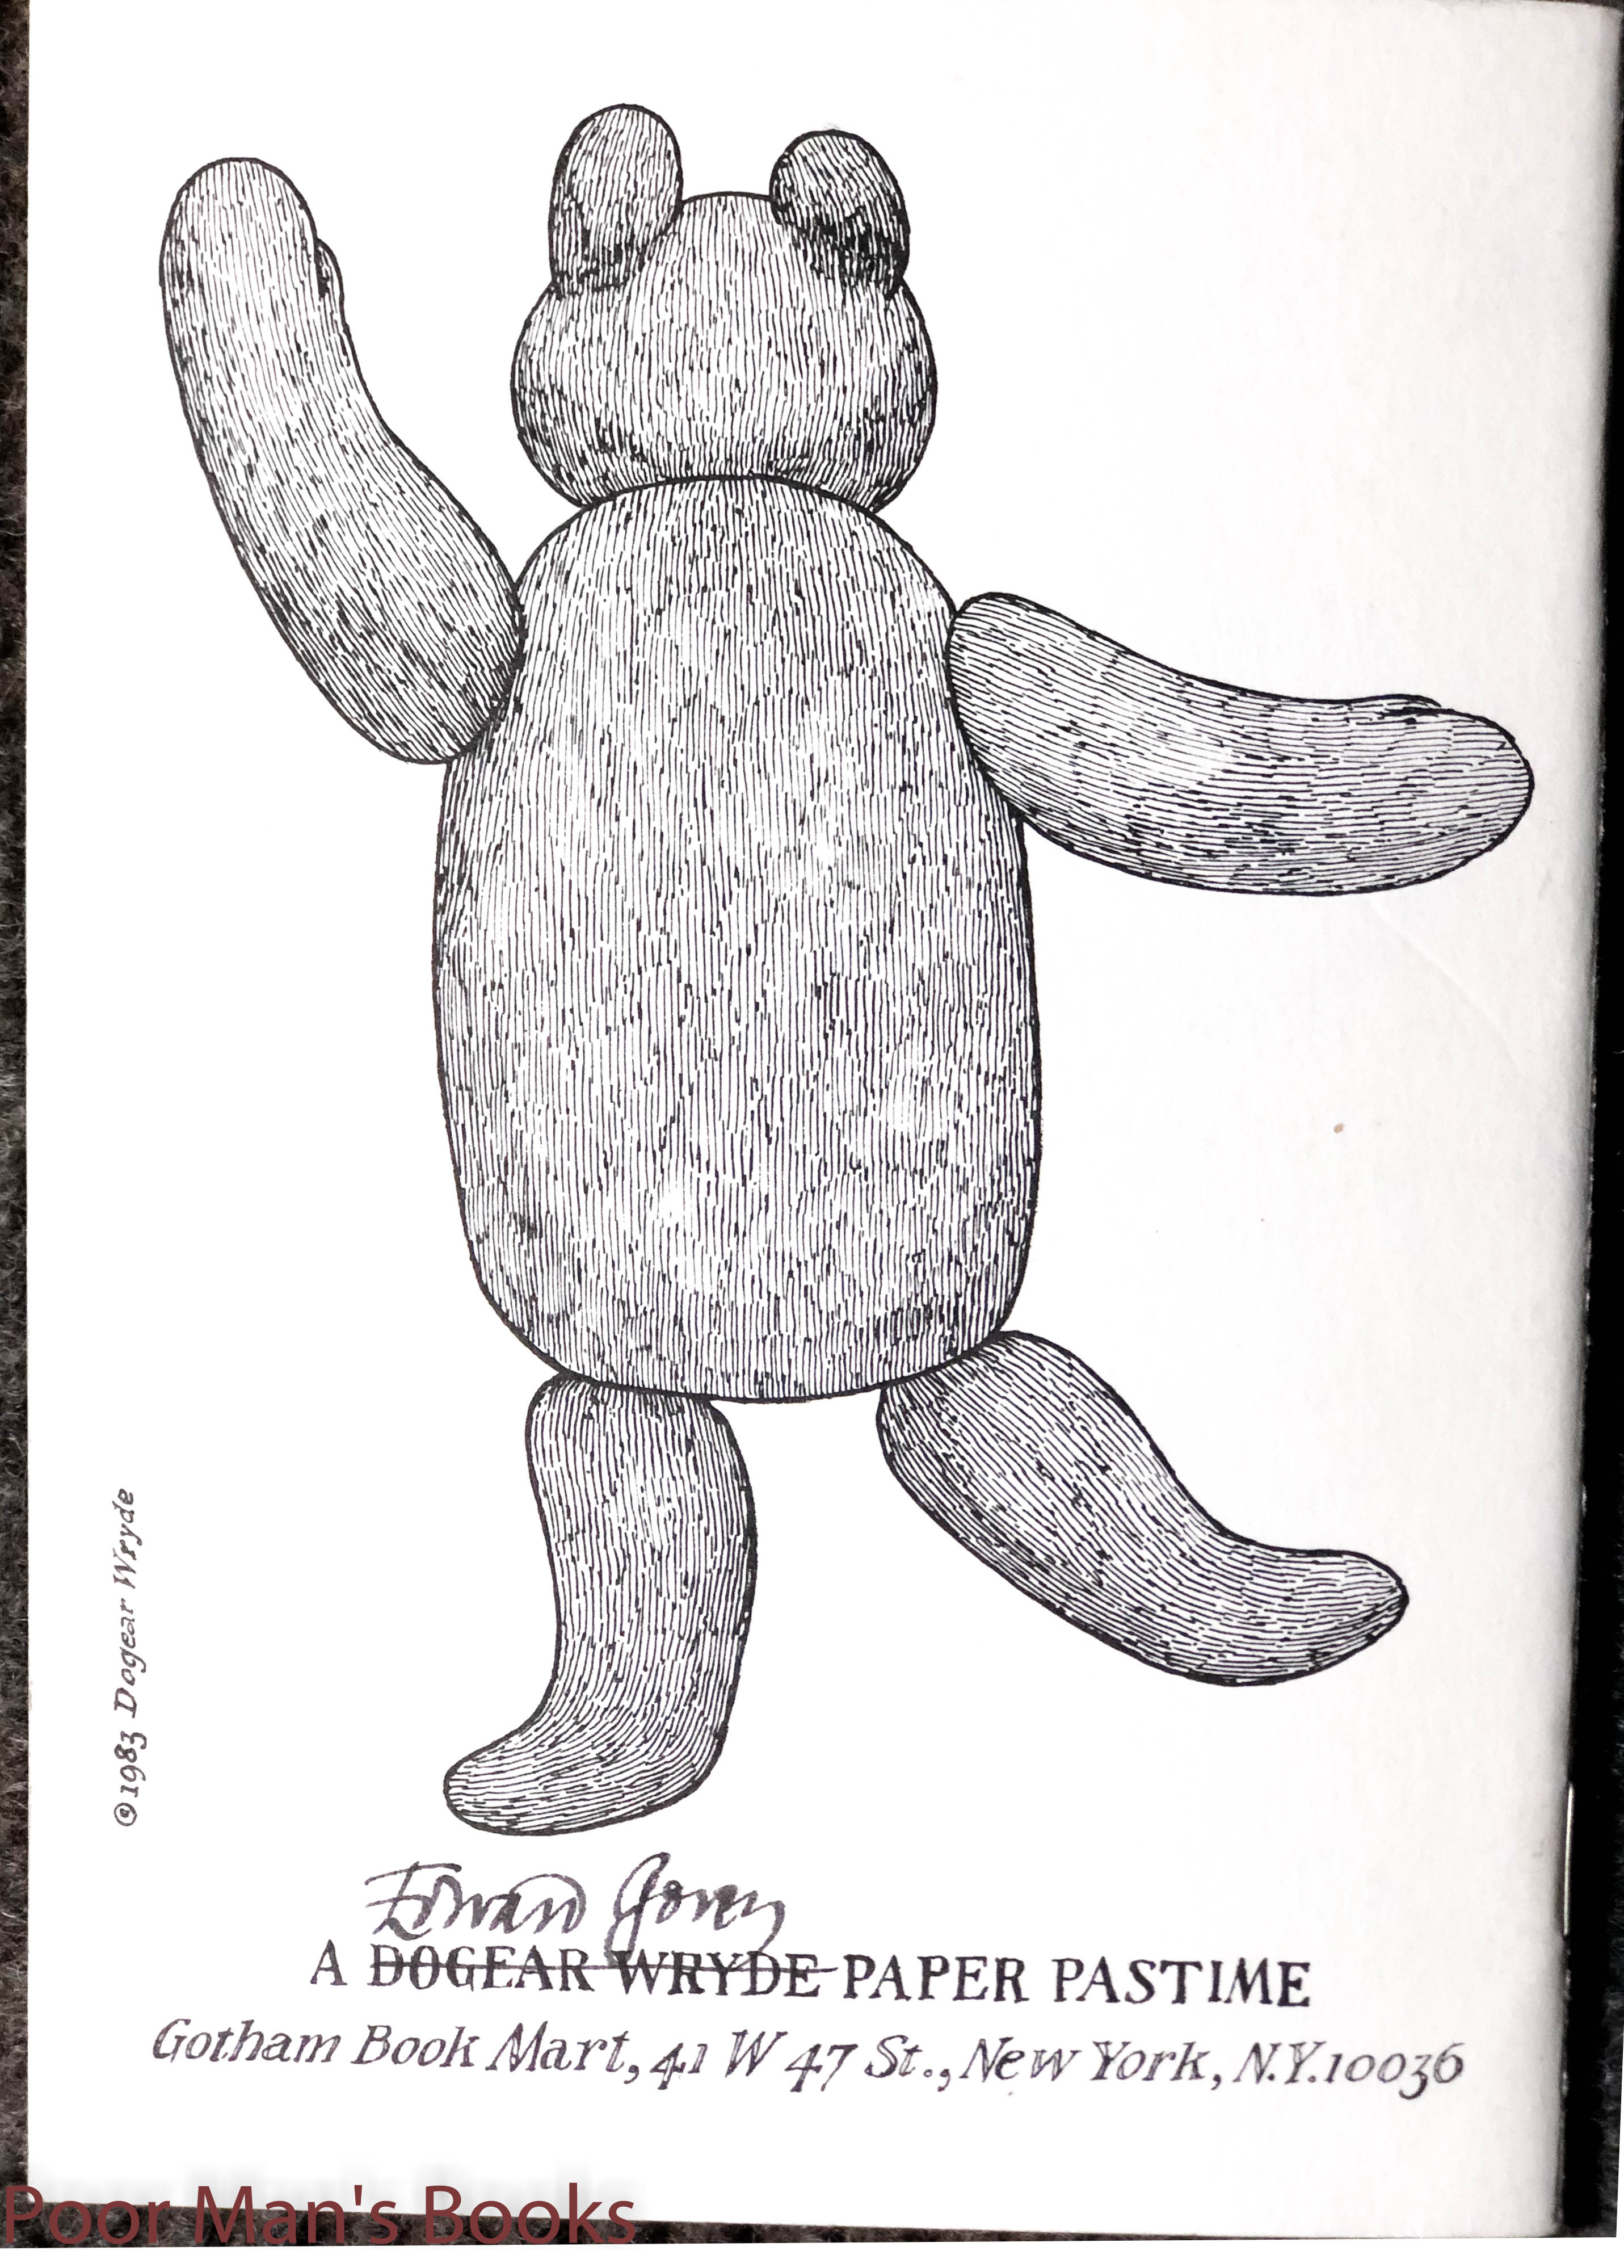 Image for E. D. Ward. A Mercurial Bear. A Dogear Wryde Paper Pastime.signed As Dogear Wryde 1983